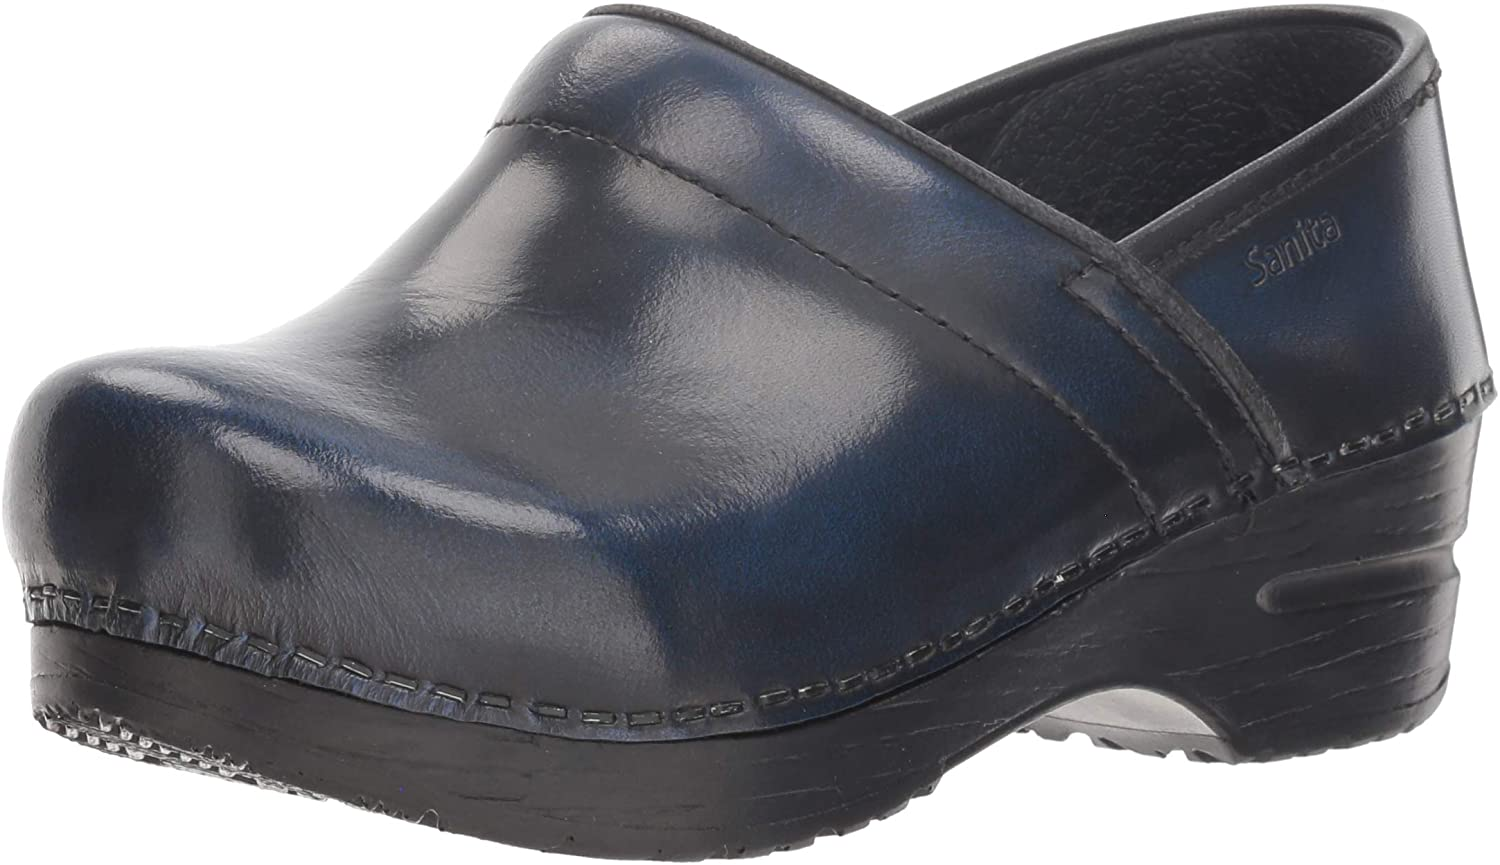 Sanita Women's Professional Narrow Cabrio Clog